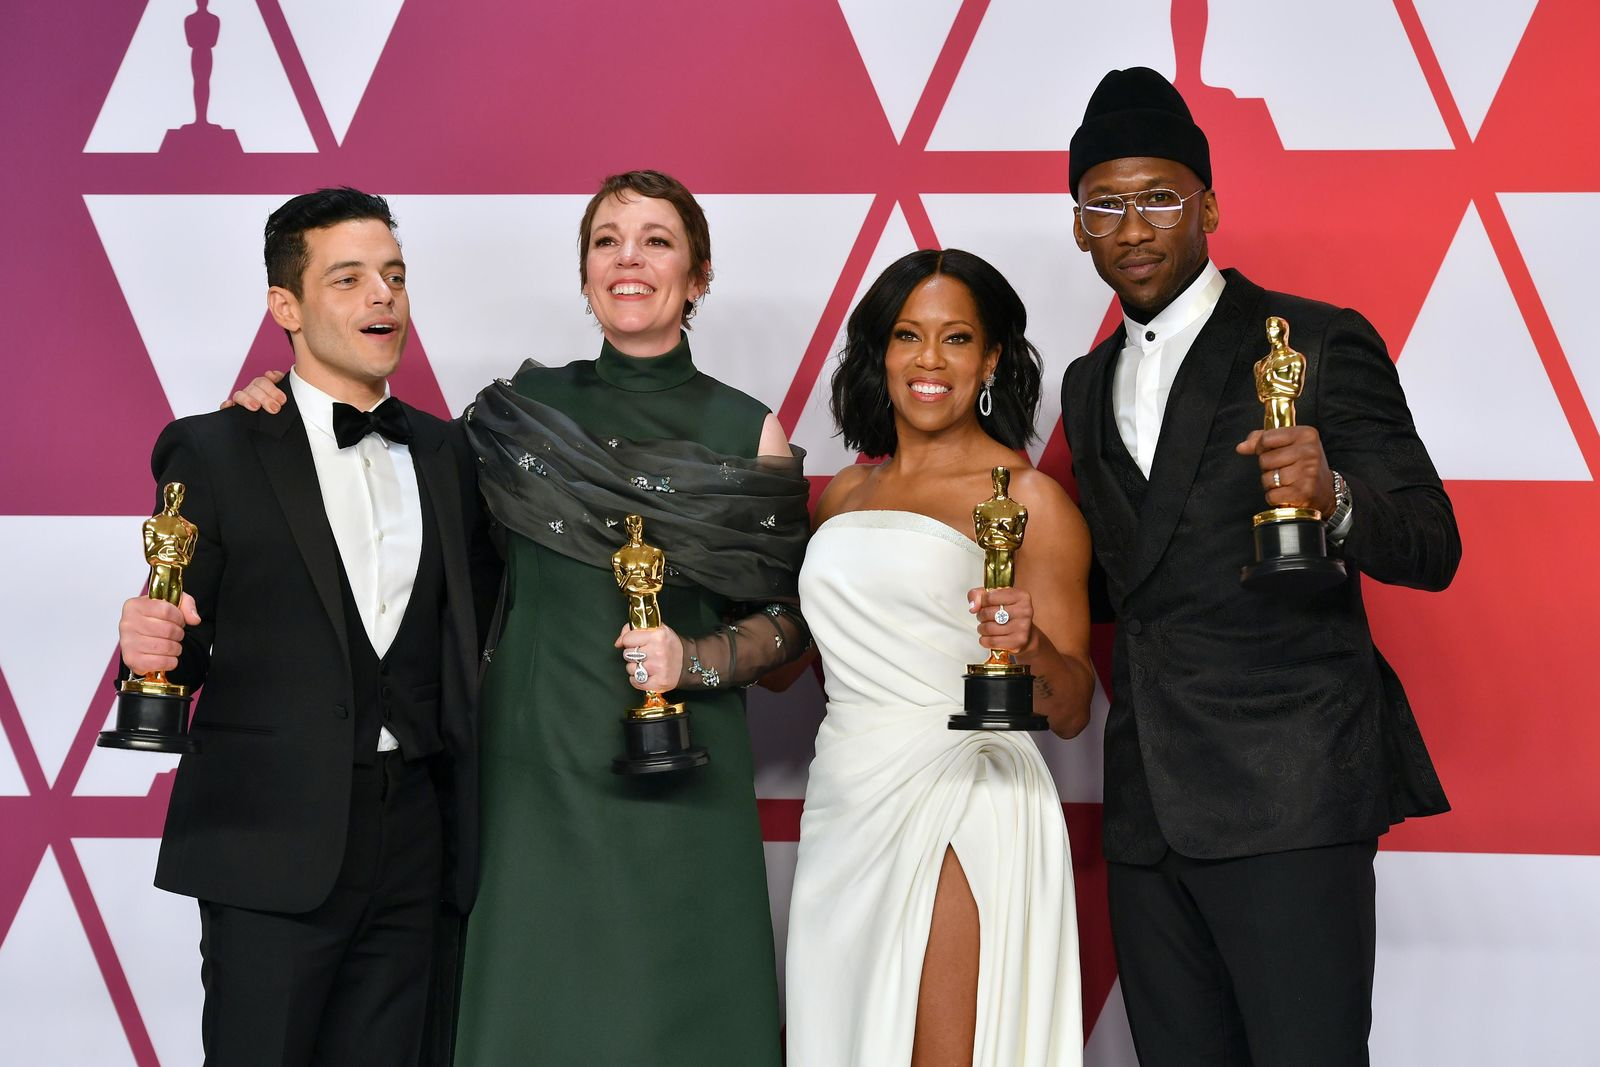 "FILE - This Feb. 24, 2019 file photo shows Oscar winners, from left, Rami Malek, for best performance by an actor in a leading role for ""Bohemian Rhapsody"", Olivia Colman, for best performance by an actress in a leading role for ""The Favourite"", Regina King, for best performance by an actress in a supporting role for ""If Beale Street Could Talk"", and Mahershala Ali, for best performance by an actor in a supporting role for ""Green Book"", holding their awards in the press room at the Oscars in Los Angeles. (Photo by Jordan Strauss/Invision/AP, File)"